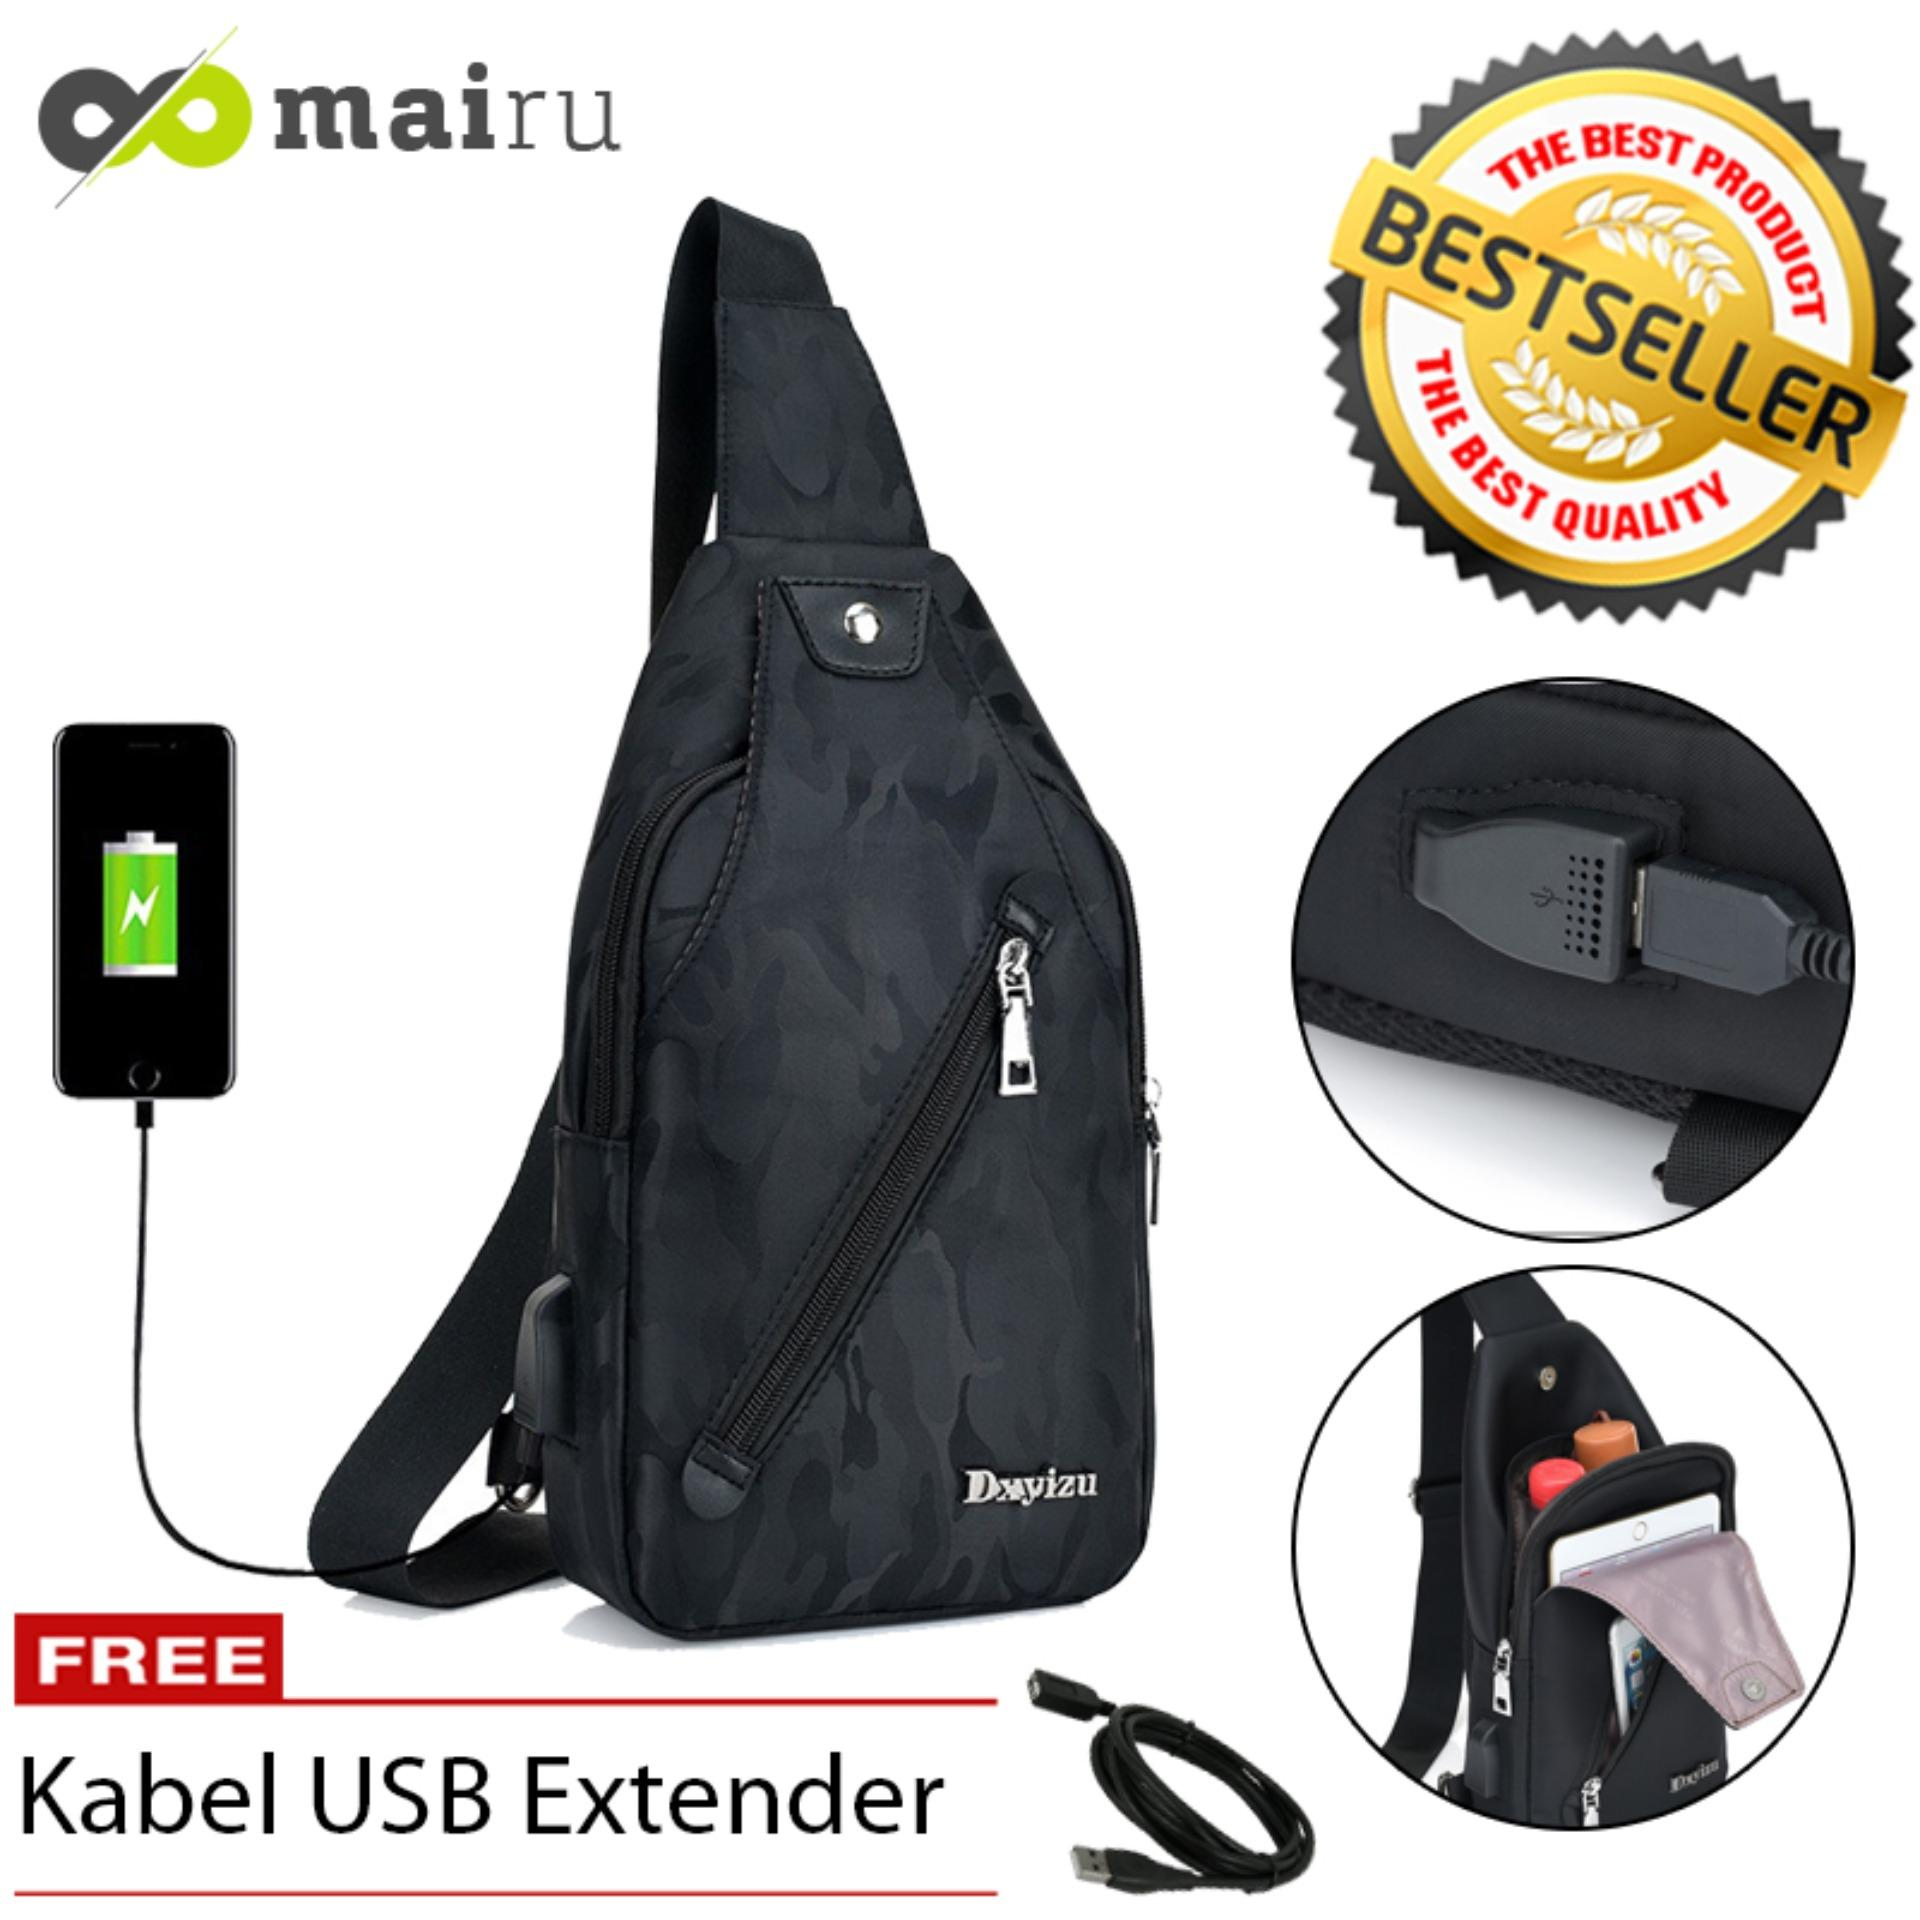 Perbandingan Harga Mairu Dxyizu 533 Tas Selempang Pria Sling Bag Cross Body With Usb Charger Support For Iphone Ipad Mini Xiaomi Samsung Tab Tablet 8 Anti Theft Mairu Di Indonesia